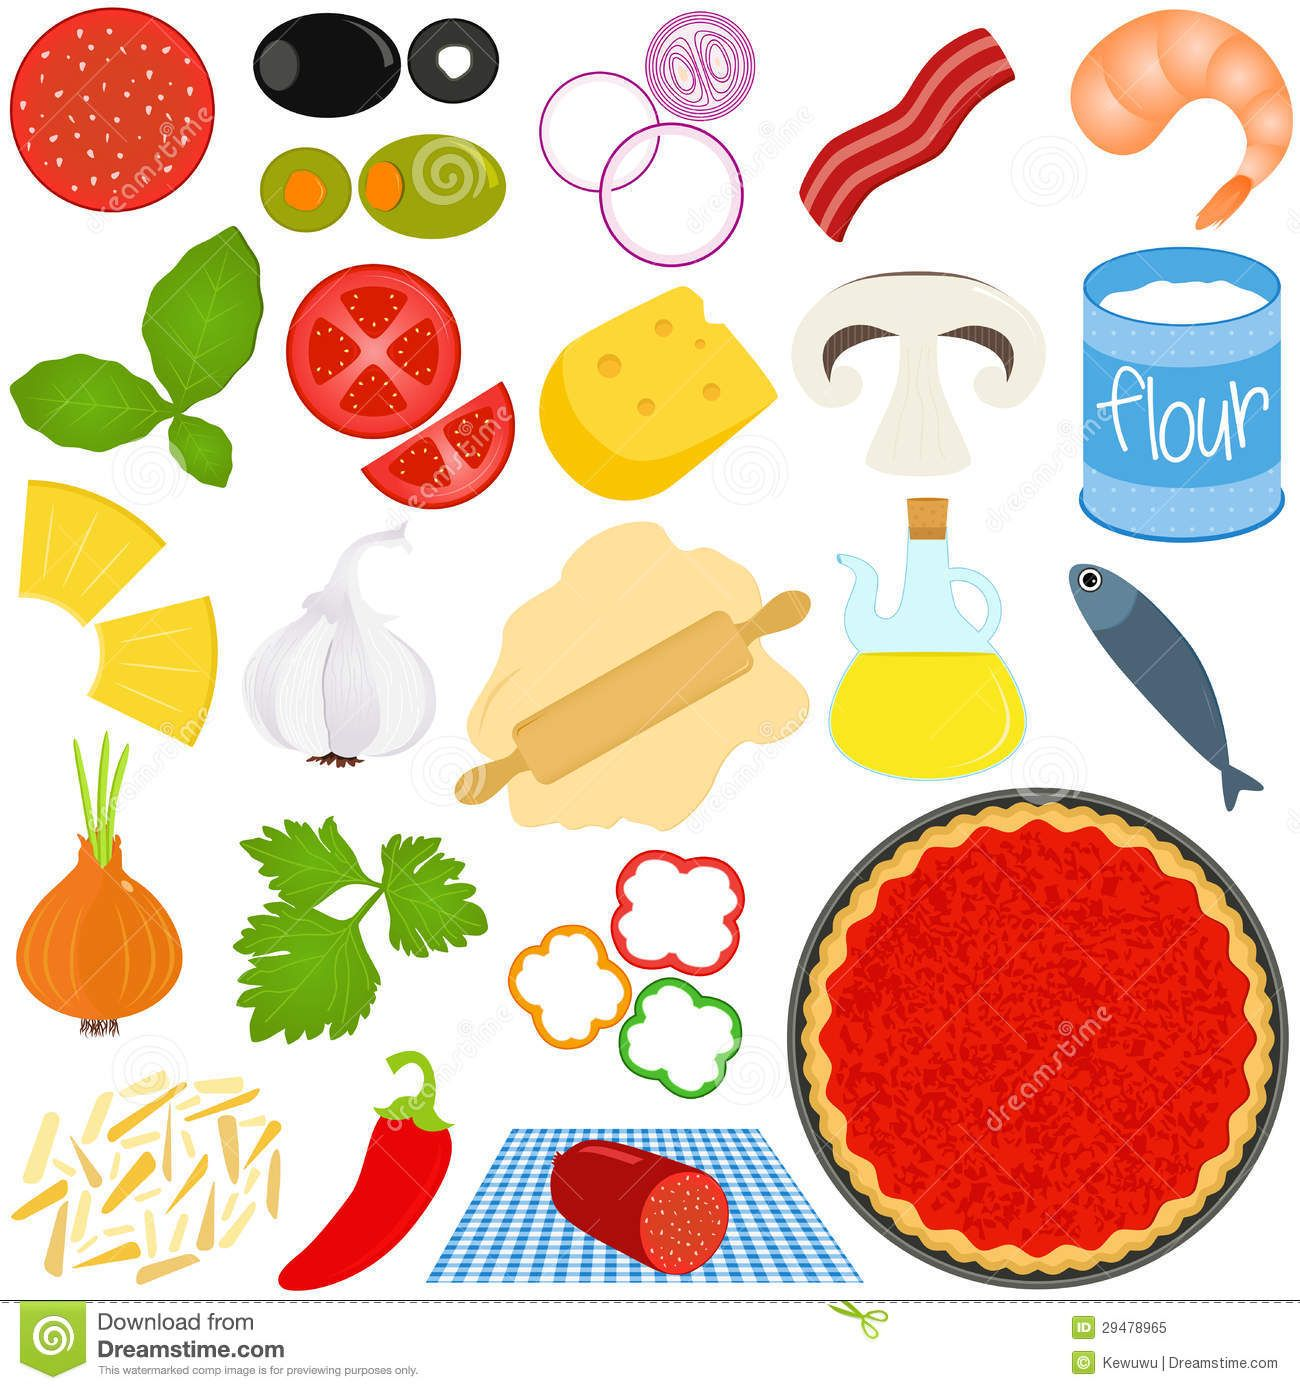 Kid making pizza clipart picture royalty free library Pizza Toppings Clipart Ingredients To Make Pizza | פינות בגן | Pizza ... picture royalty free library